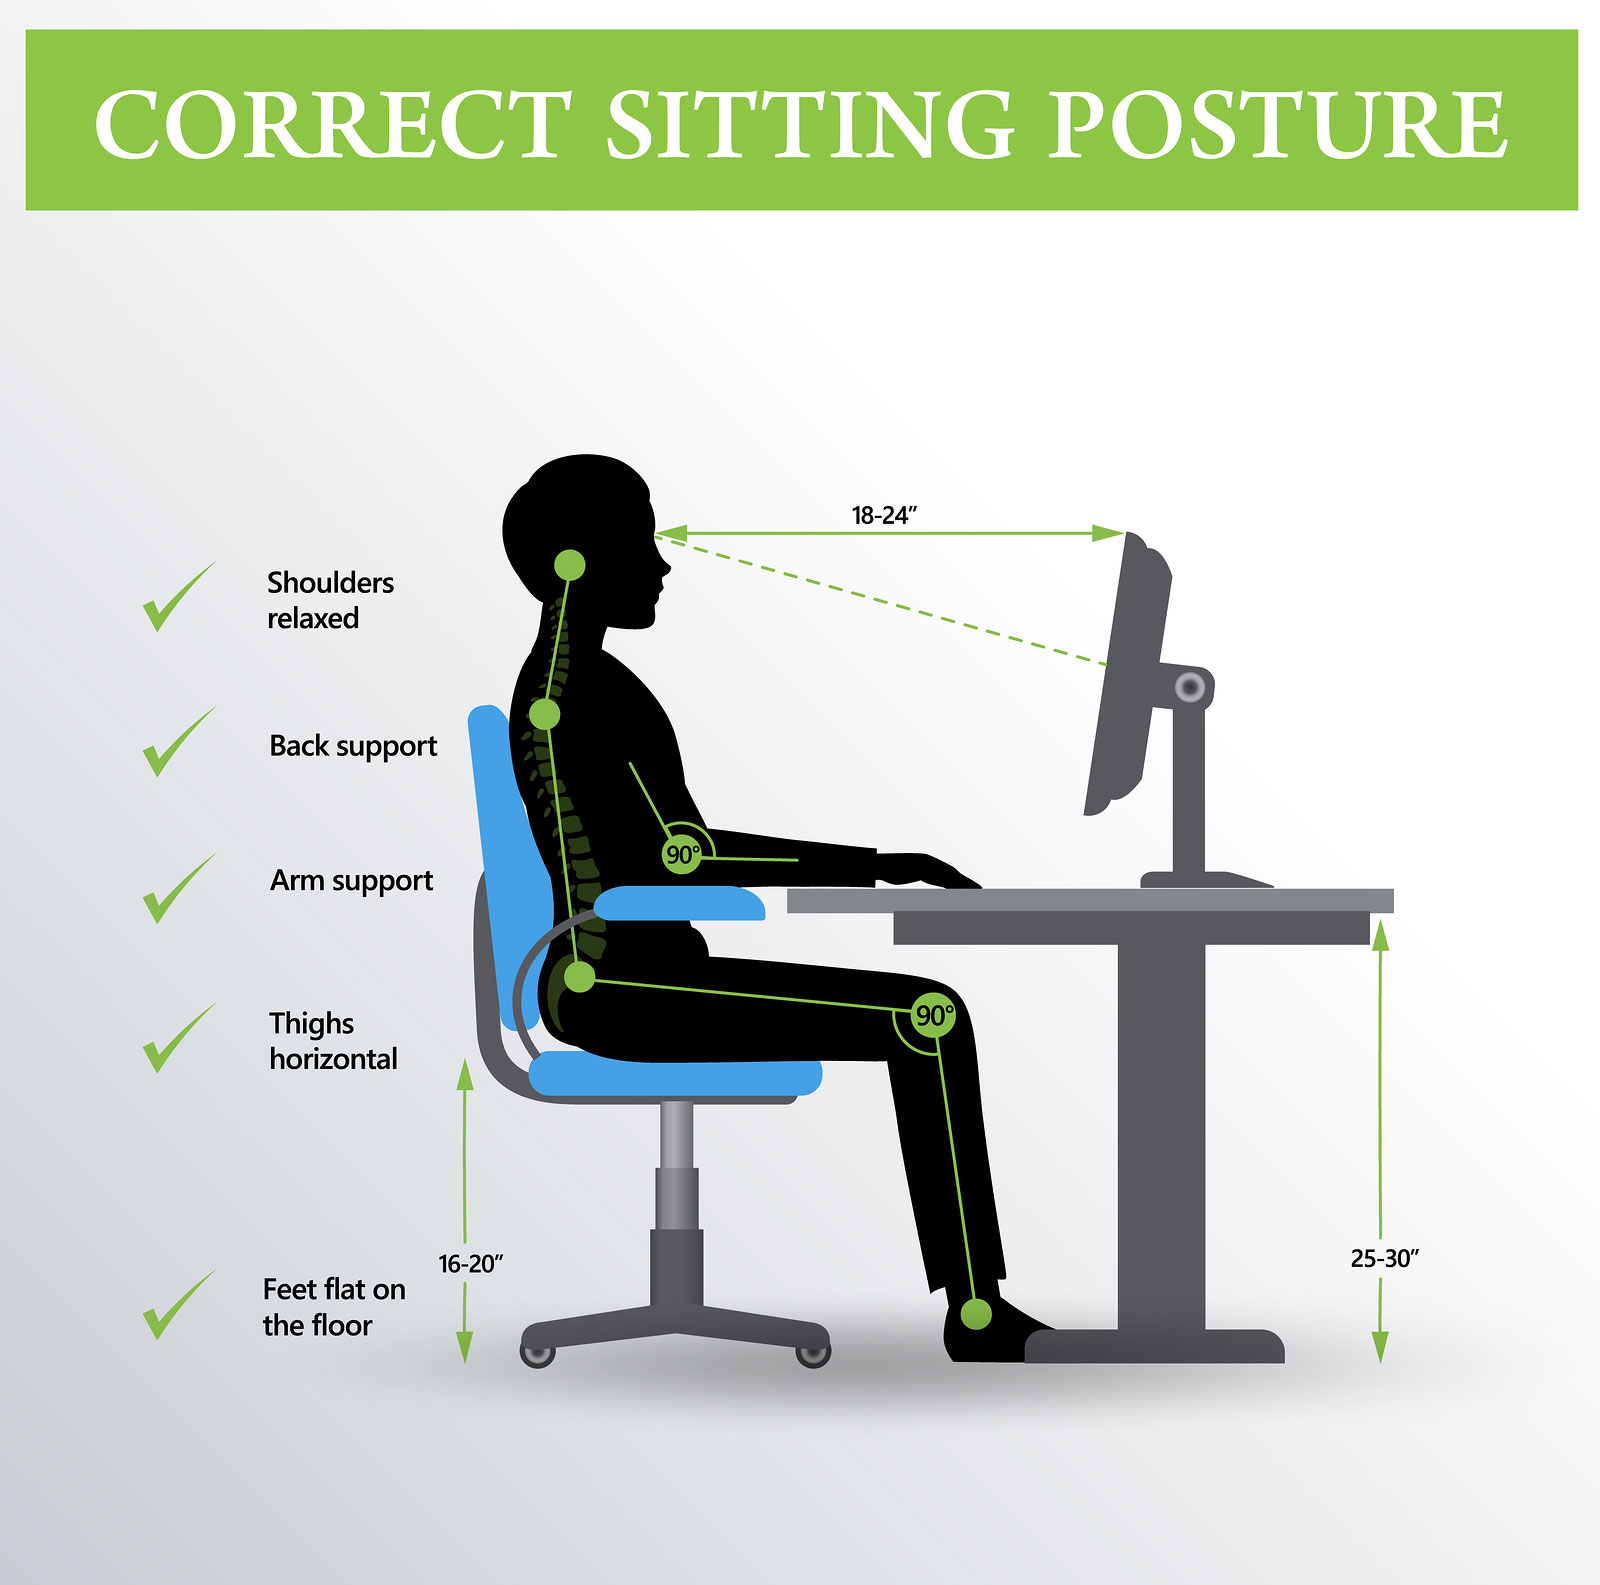 The correct sitting posture when sitting at a computer workstation